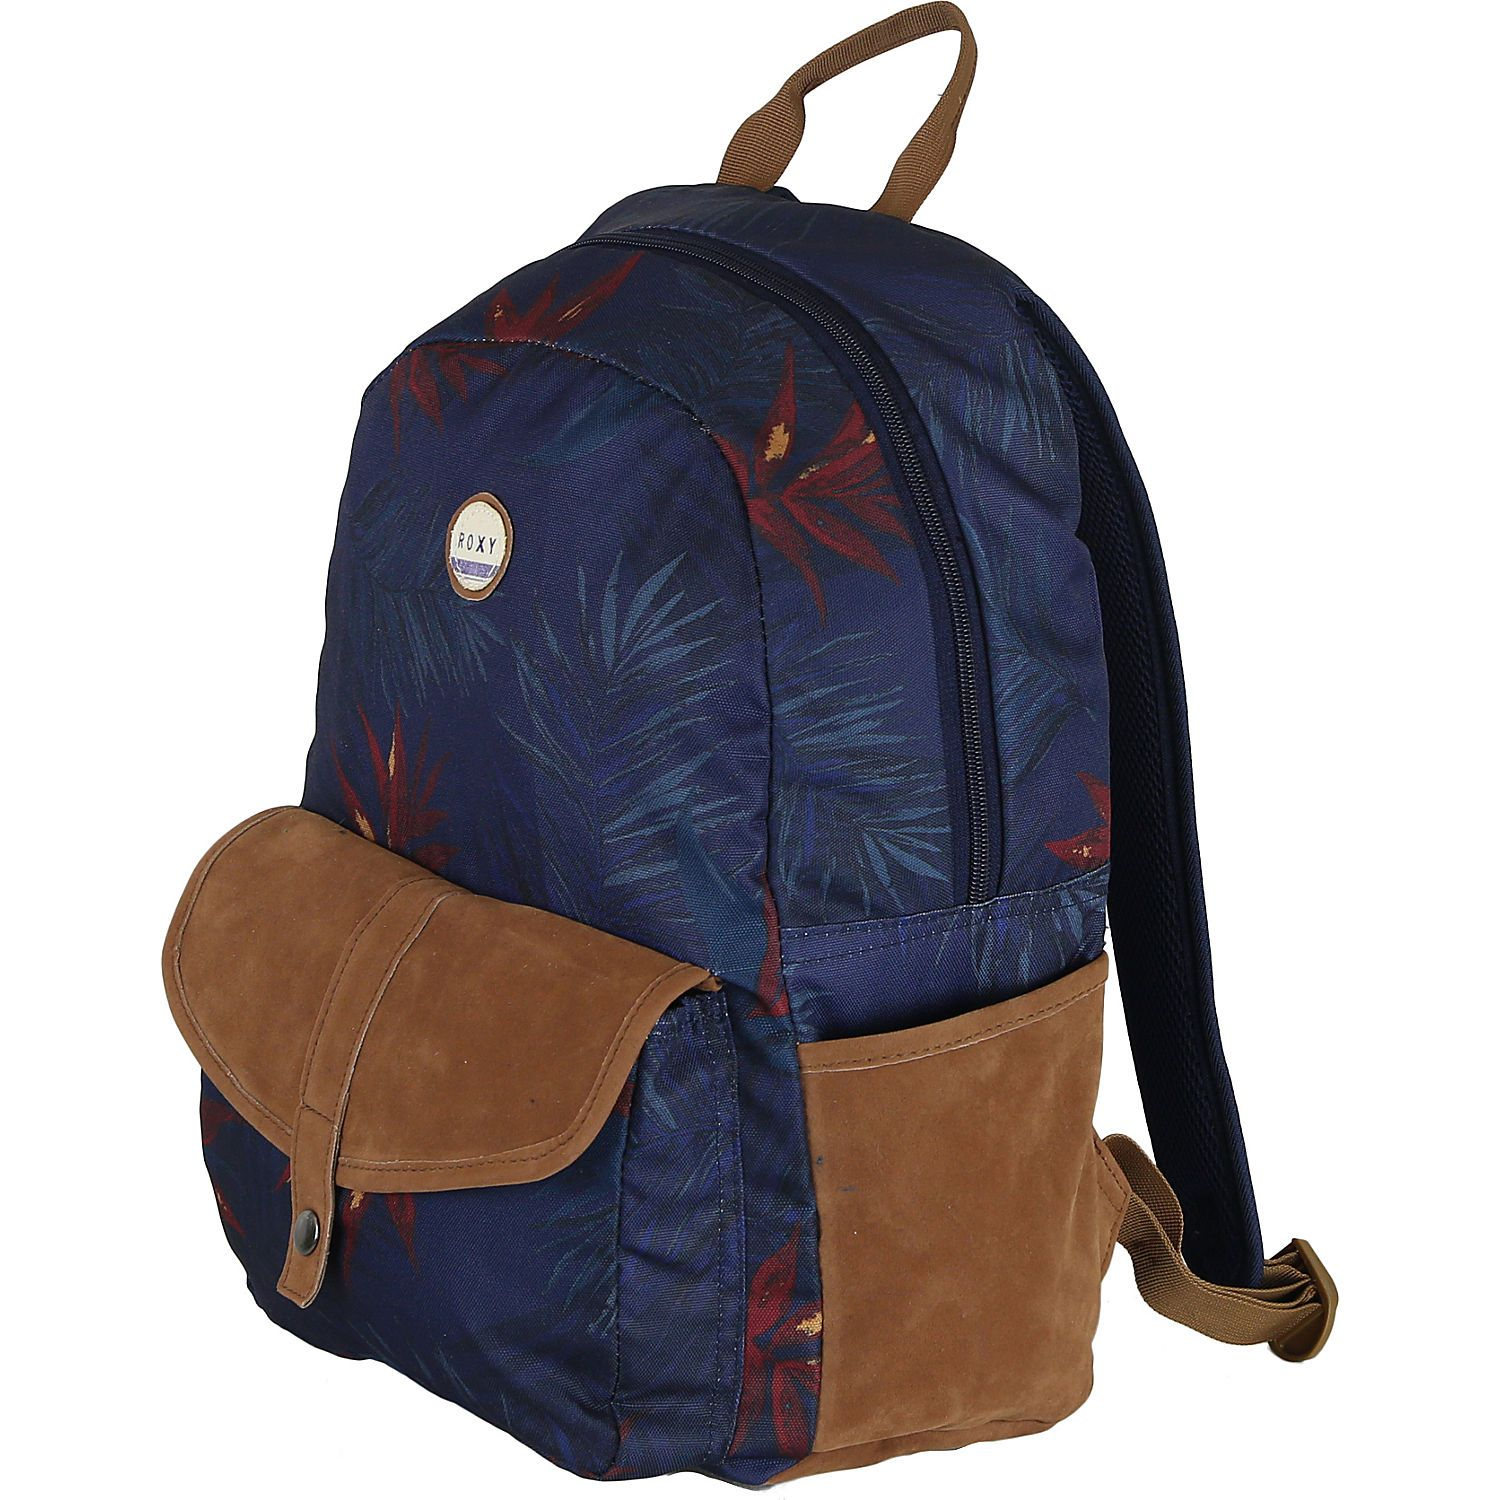 Roxy Backpacks Caribbean Laptop Backpack - eBags.com